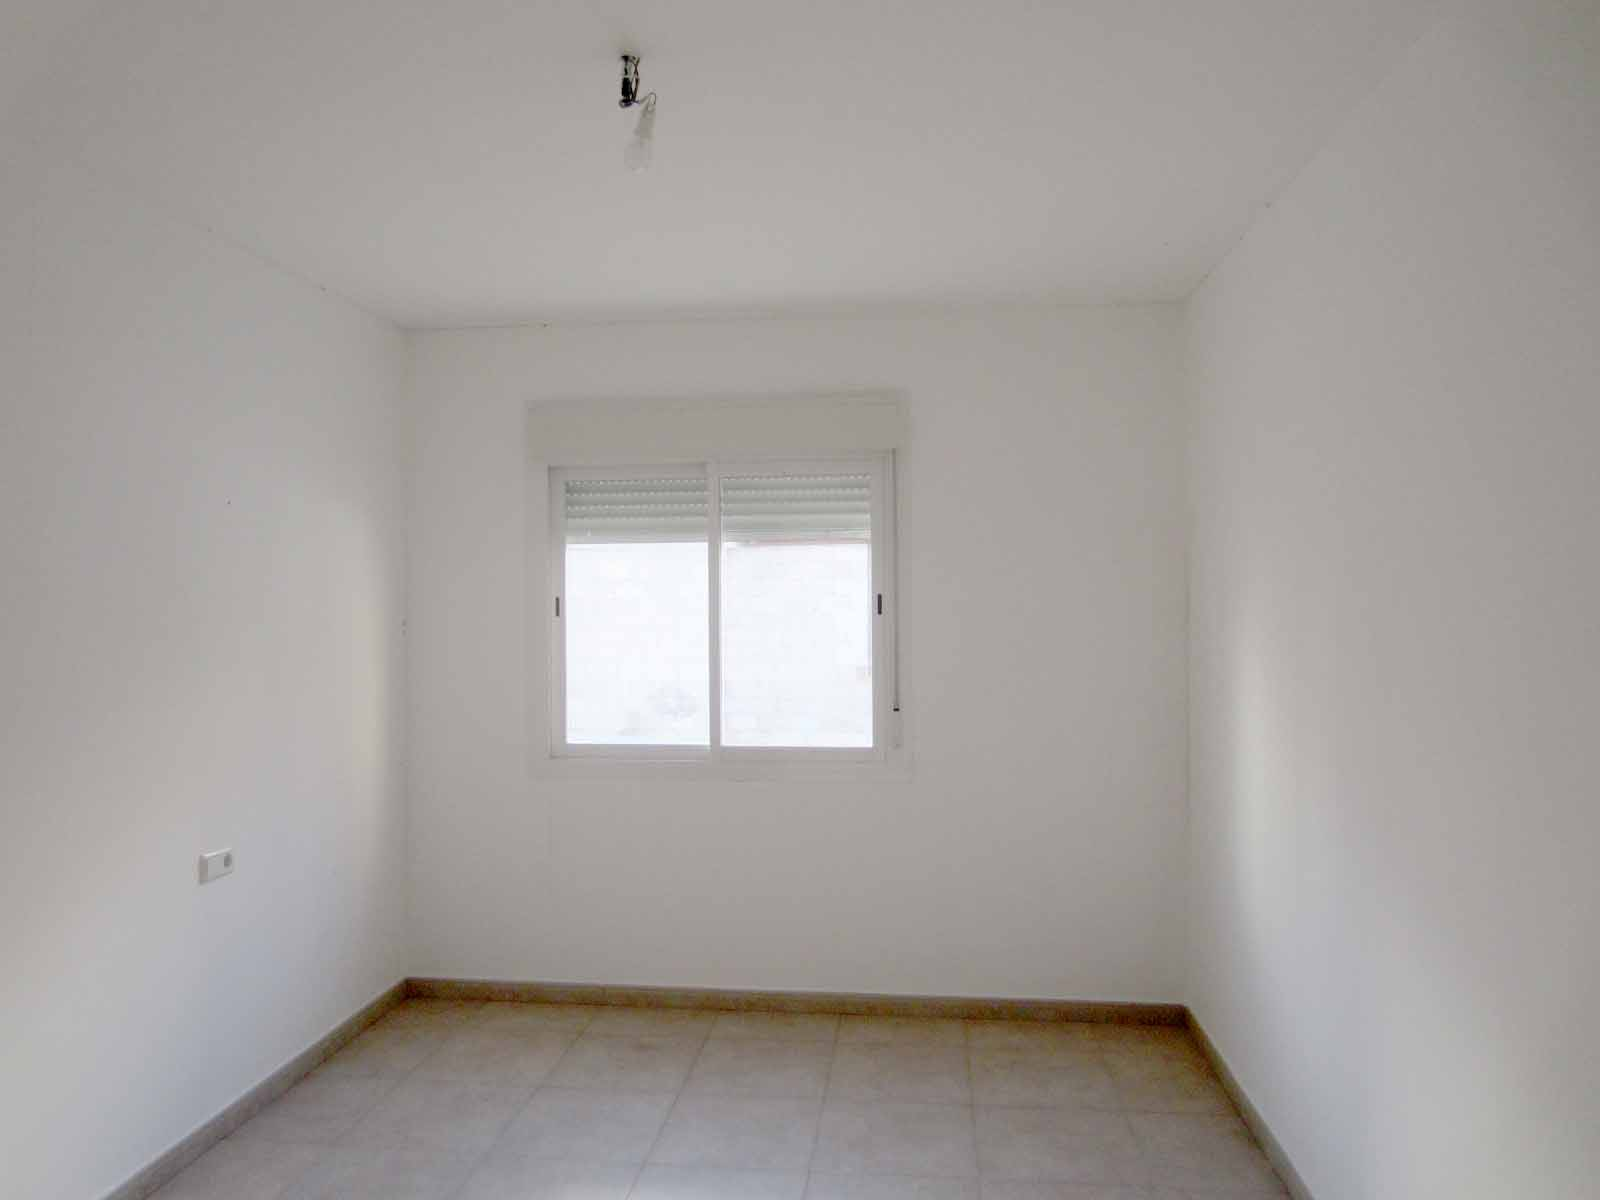 Photo  number 11: Flat / Apartment in Sale in Pedreguer, Area Centro. Ref. 5-18-14386 (CB-34468-0001)